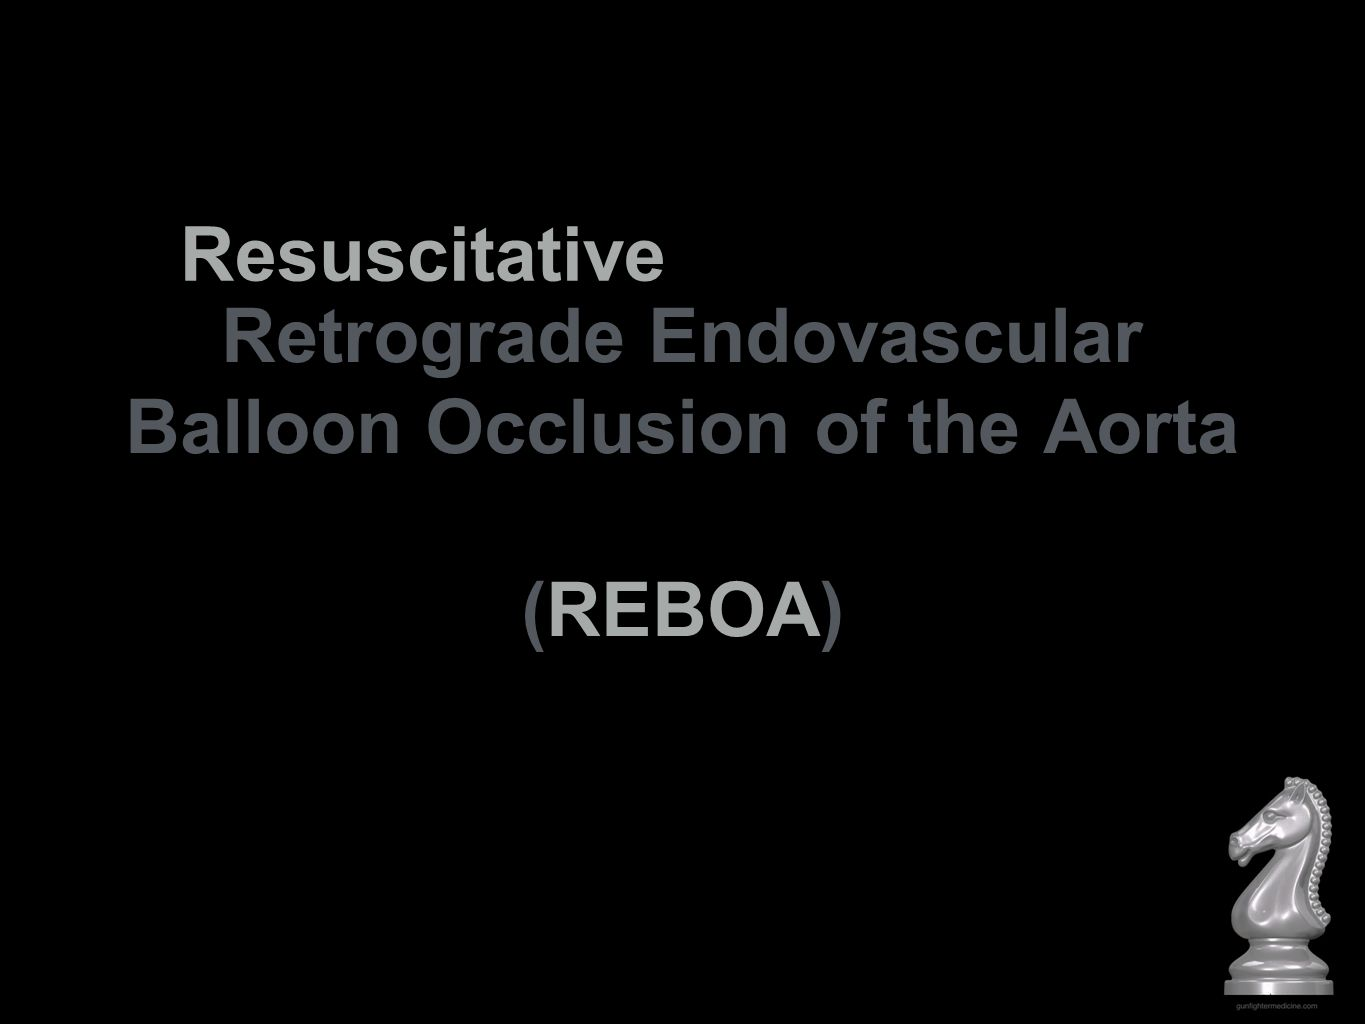 REBOA is an adjunct in the setting of hemorrhagic shock and an alternative to thoracotomy with aortic compression